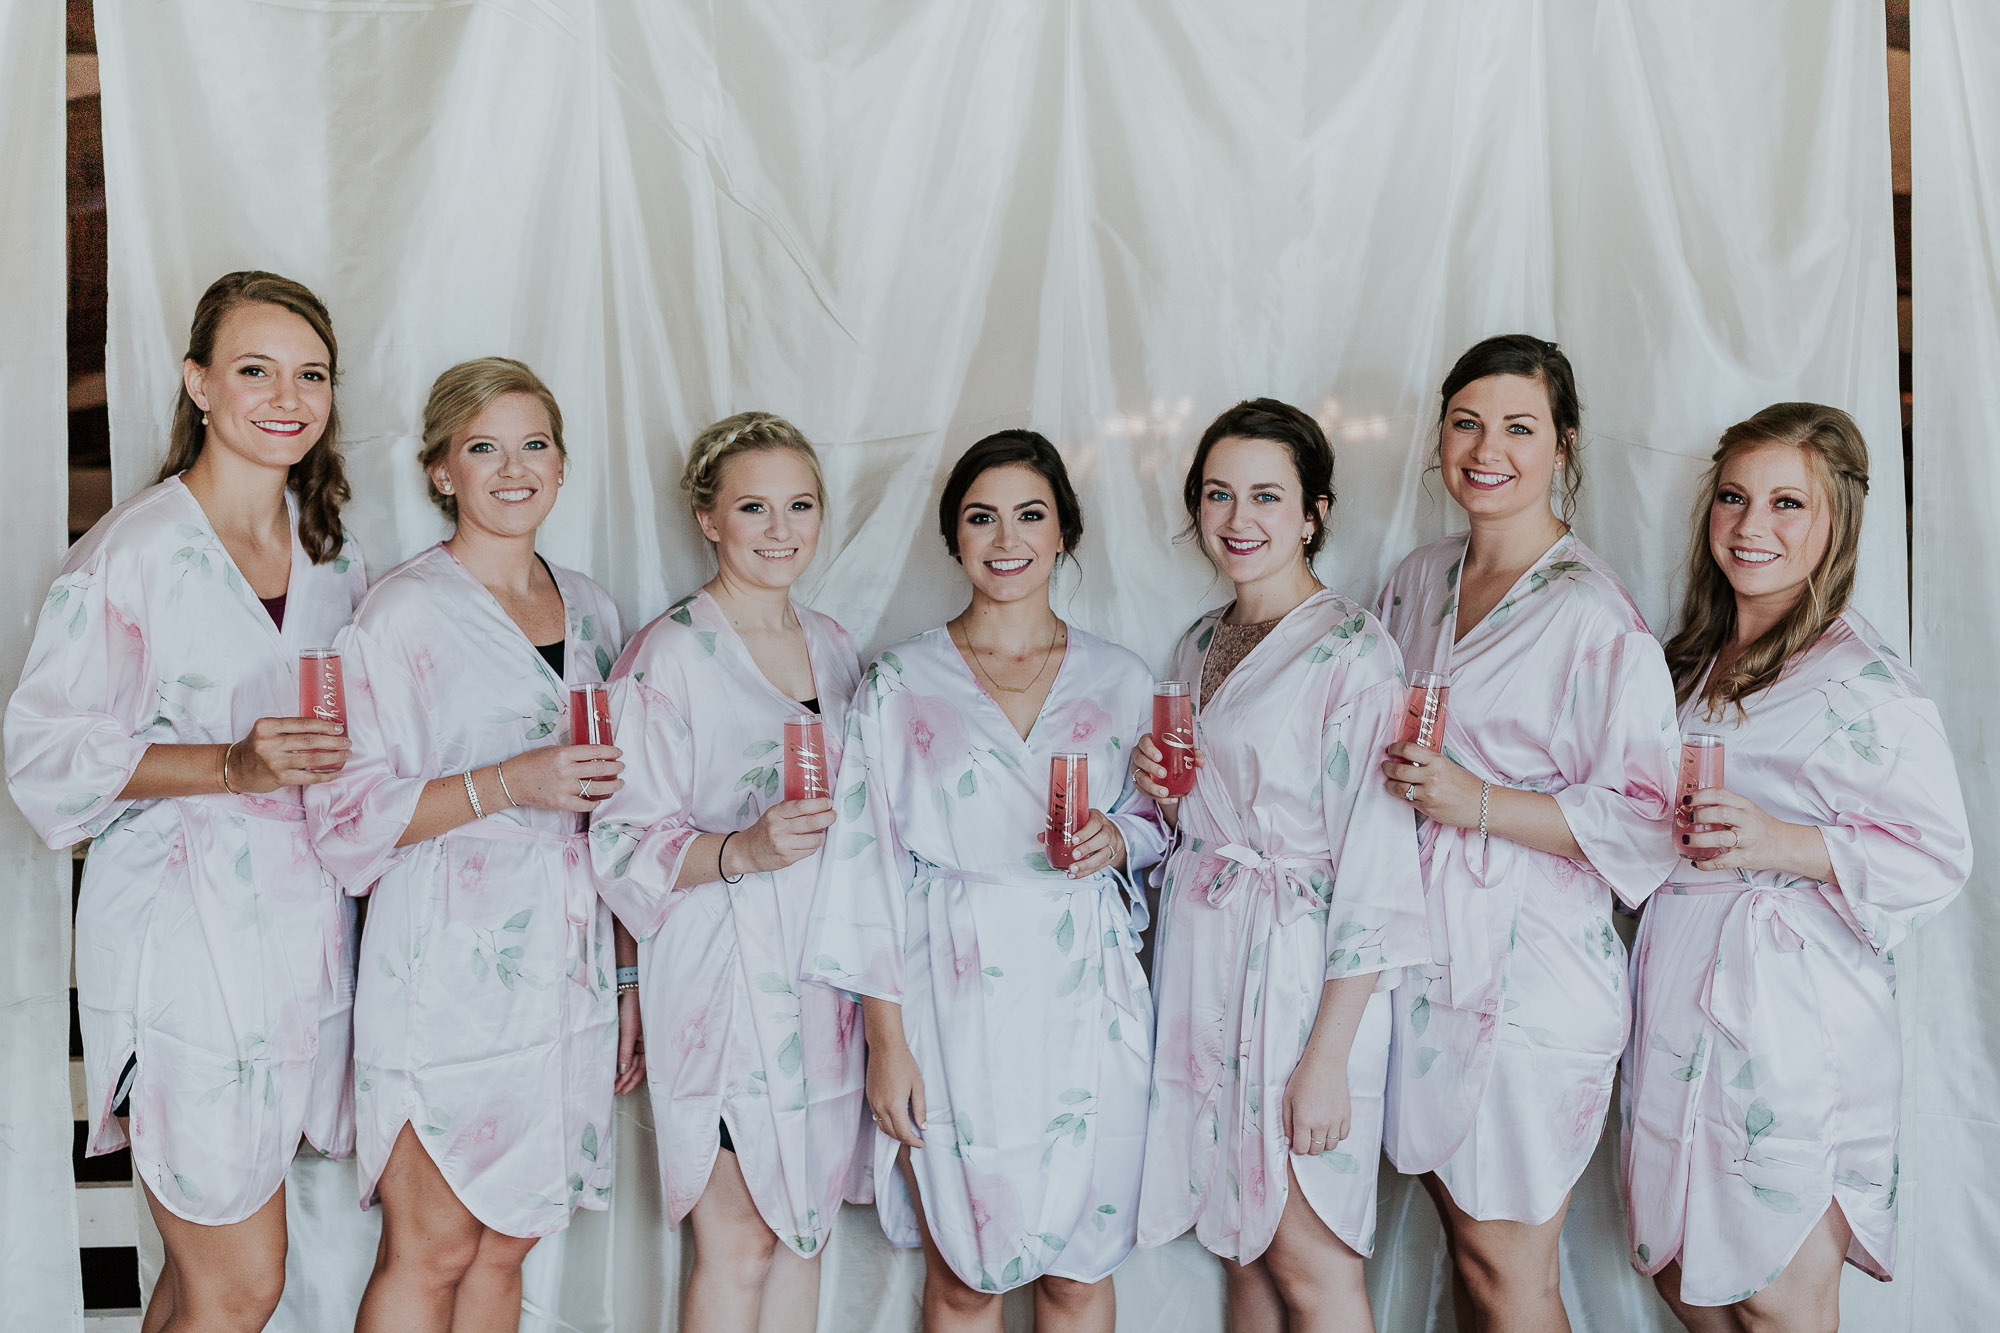 adventurous outdoor wedding southern indiana midwest wedding photographer bridesmaids robes drinks